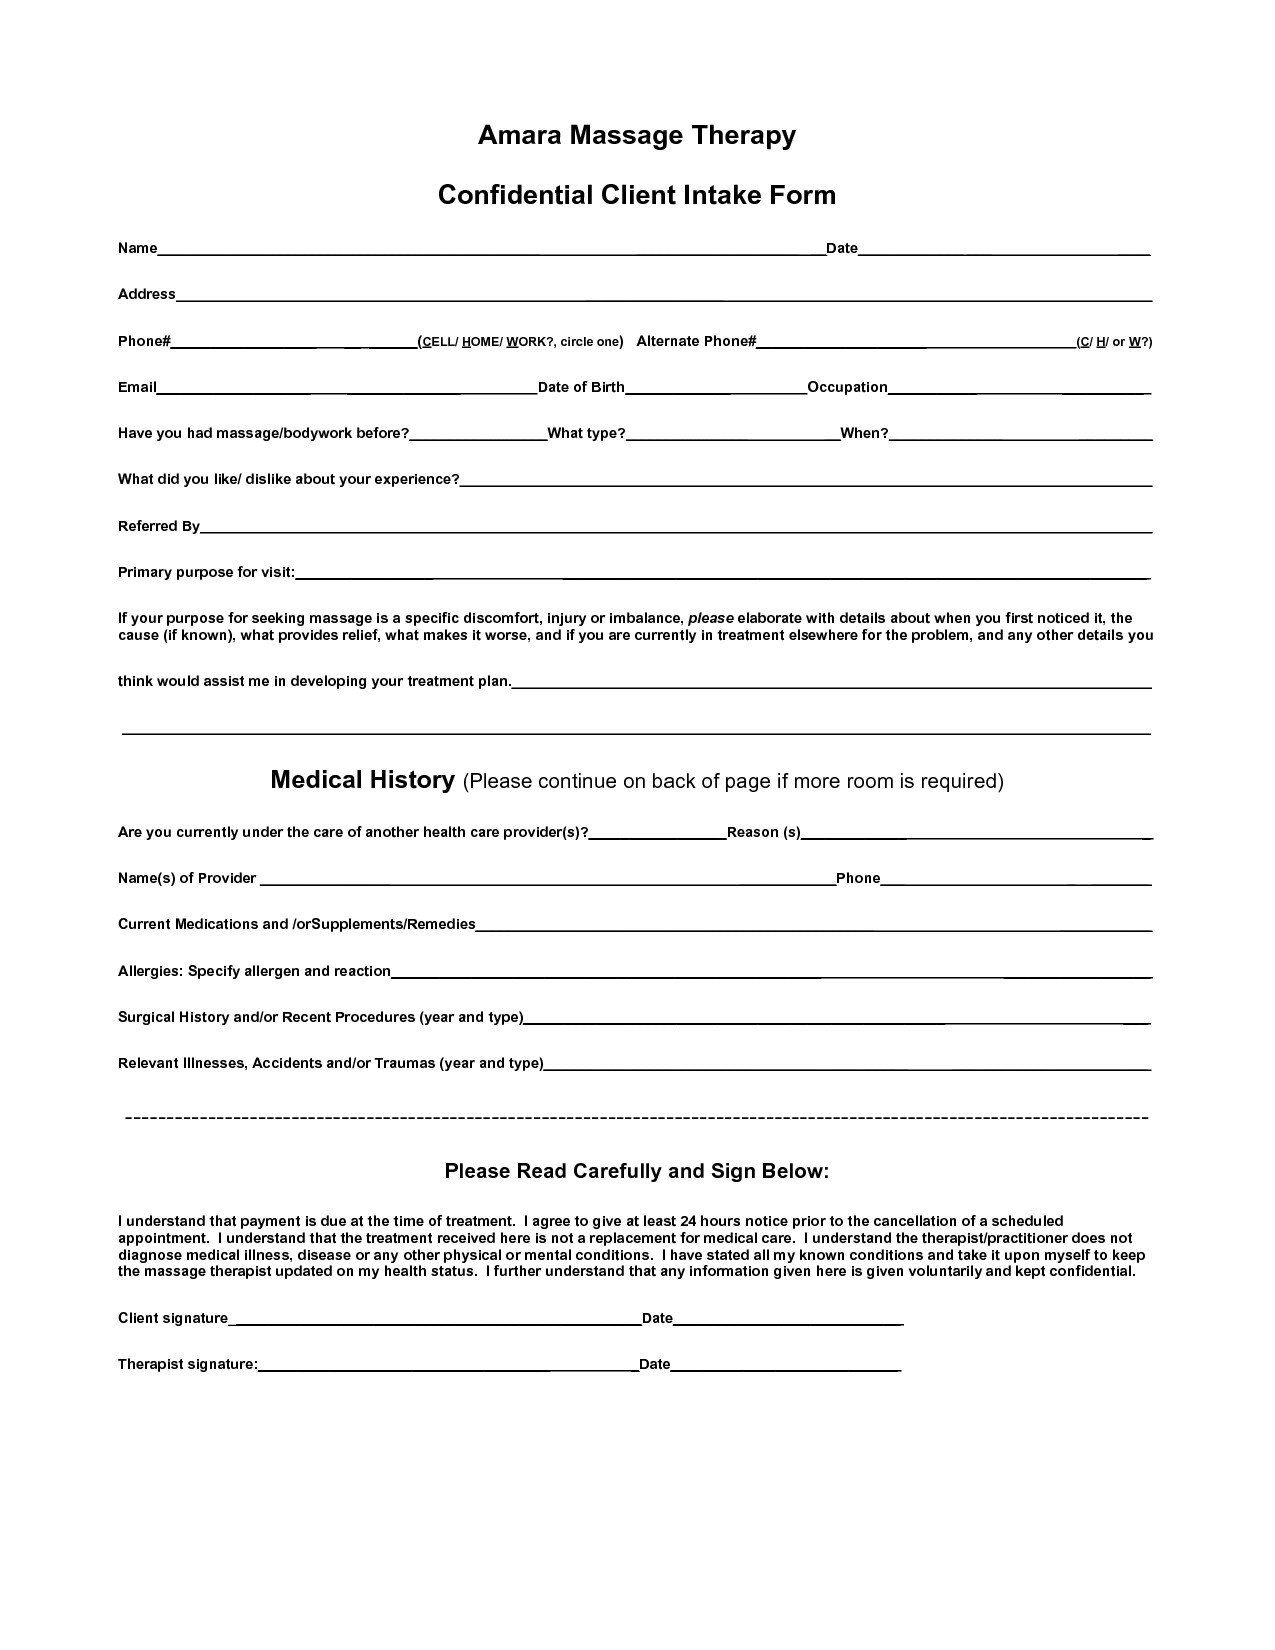 Counseling Intake form Template Body Intake form Clipart Clipart Suggest